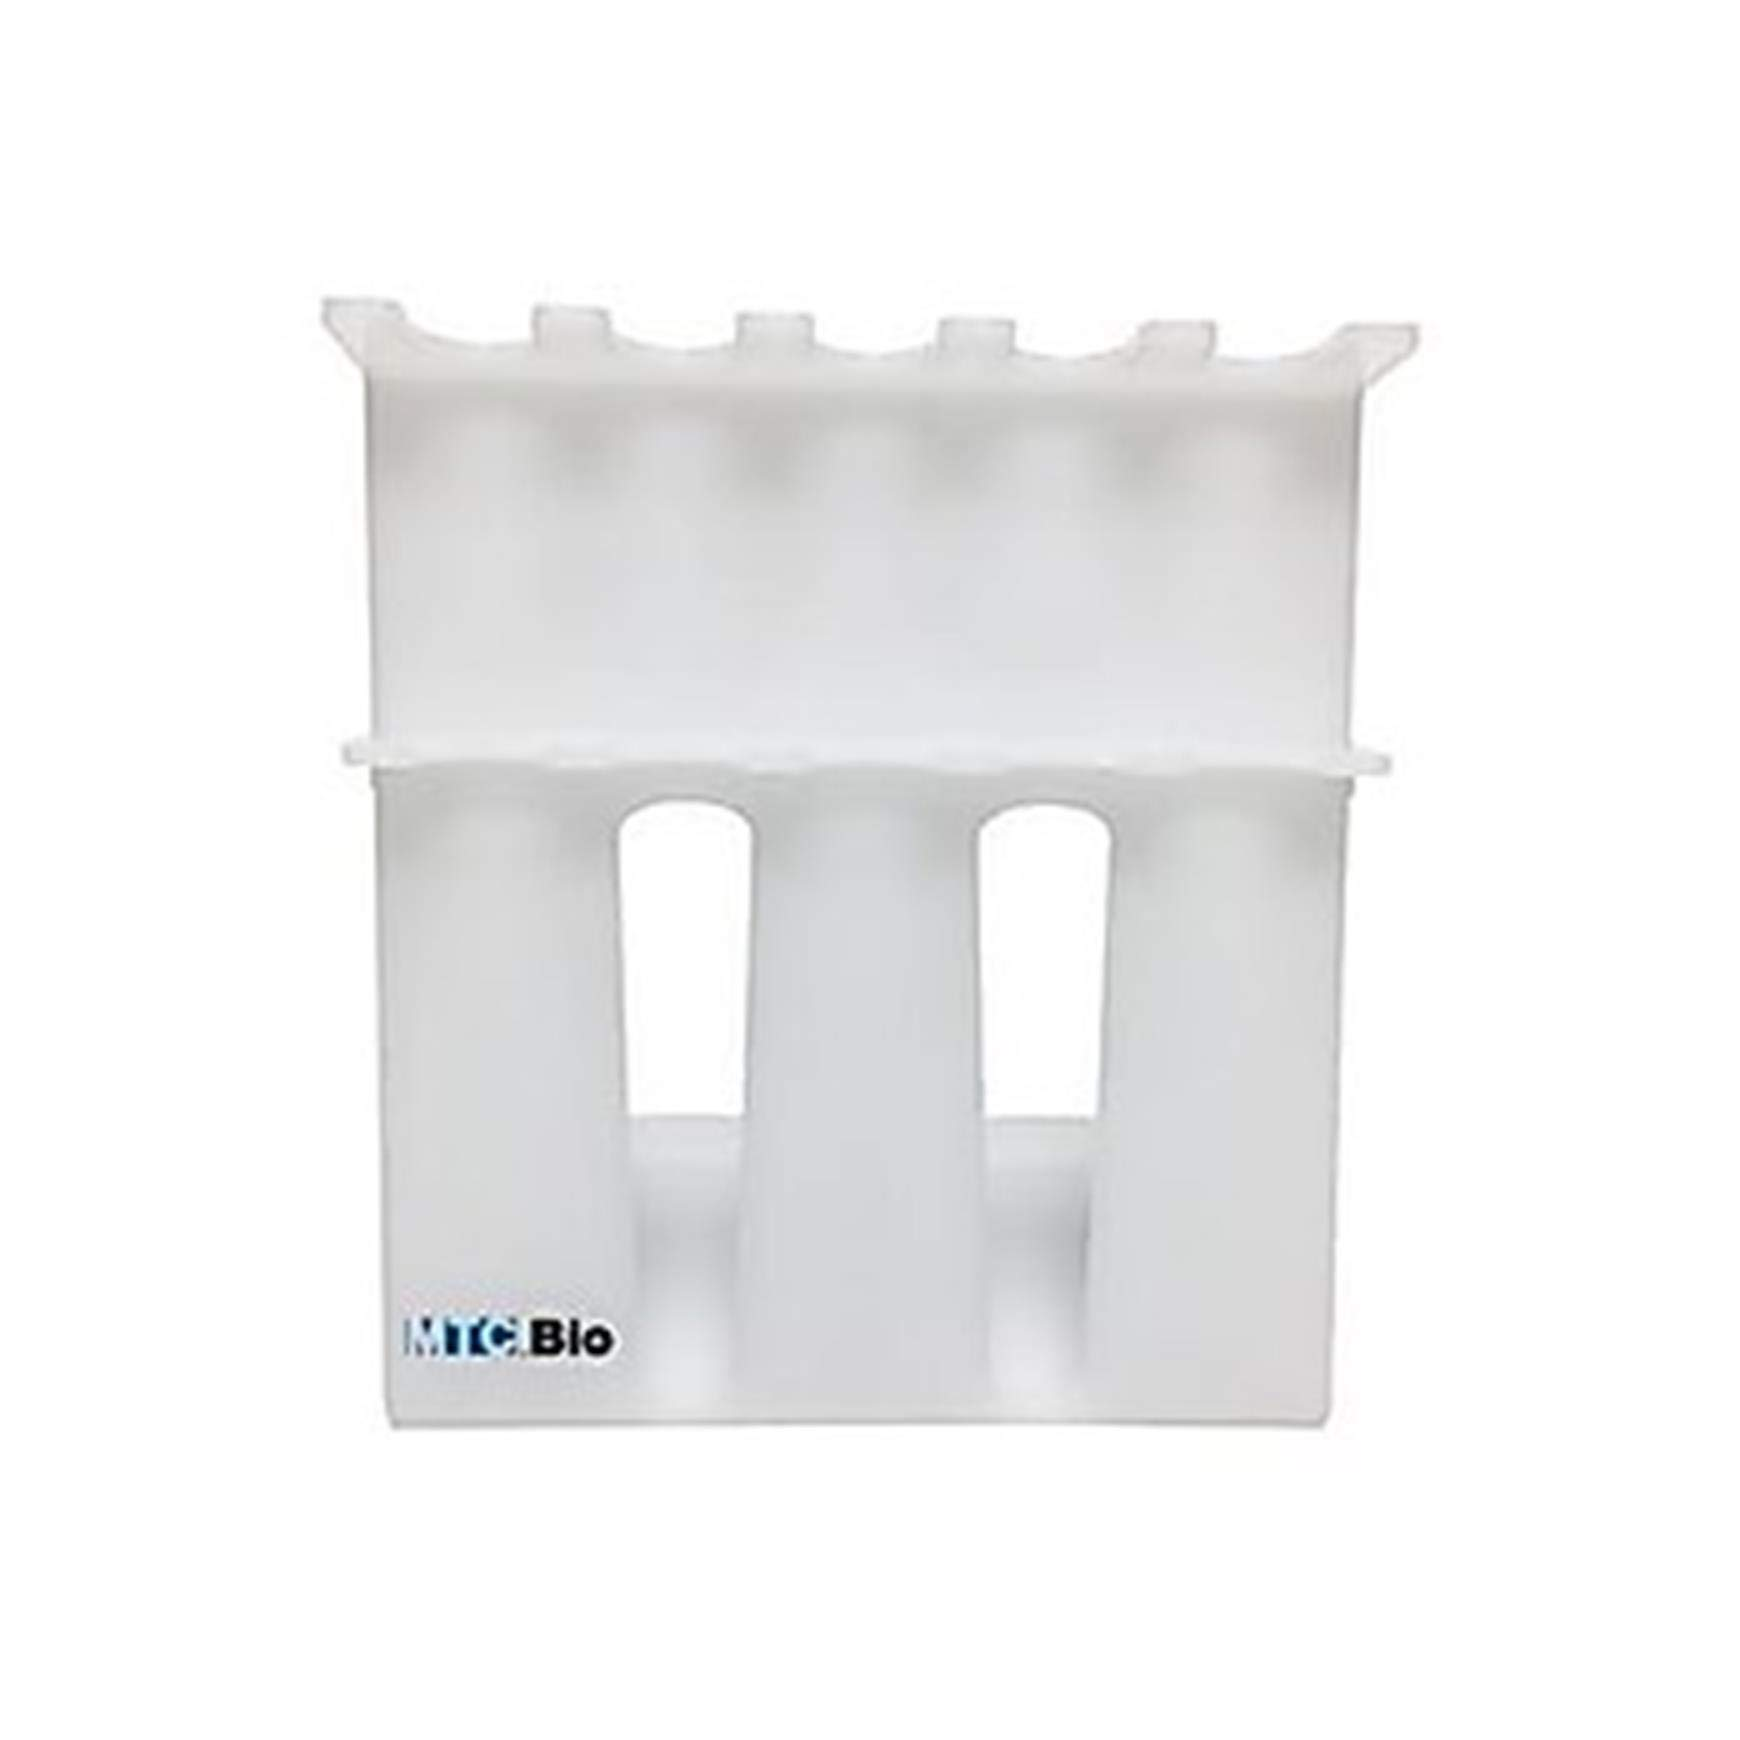 MTC Bio P4405 Sure Stand Multi Channel Capable Pipette Rack for 5 Pipettes by MTC Bio